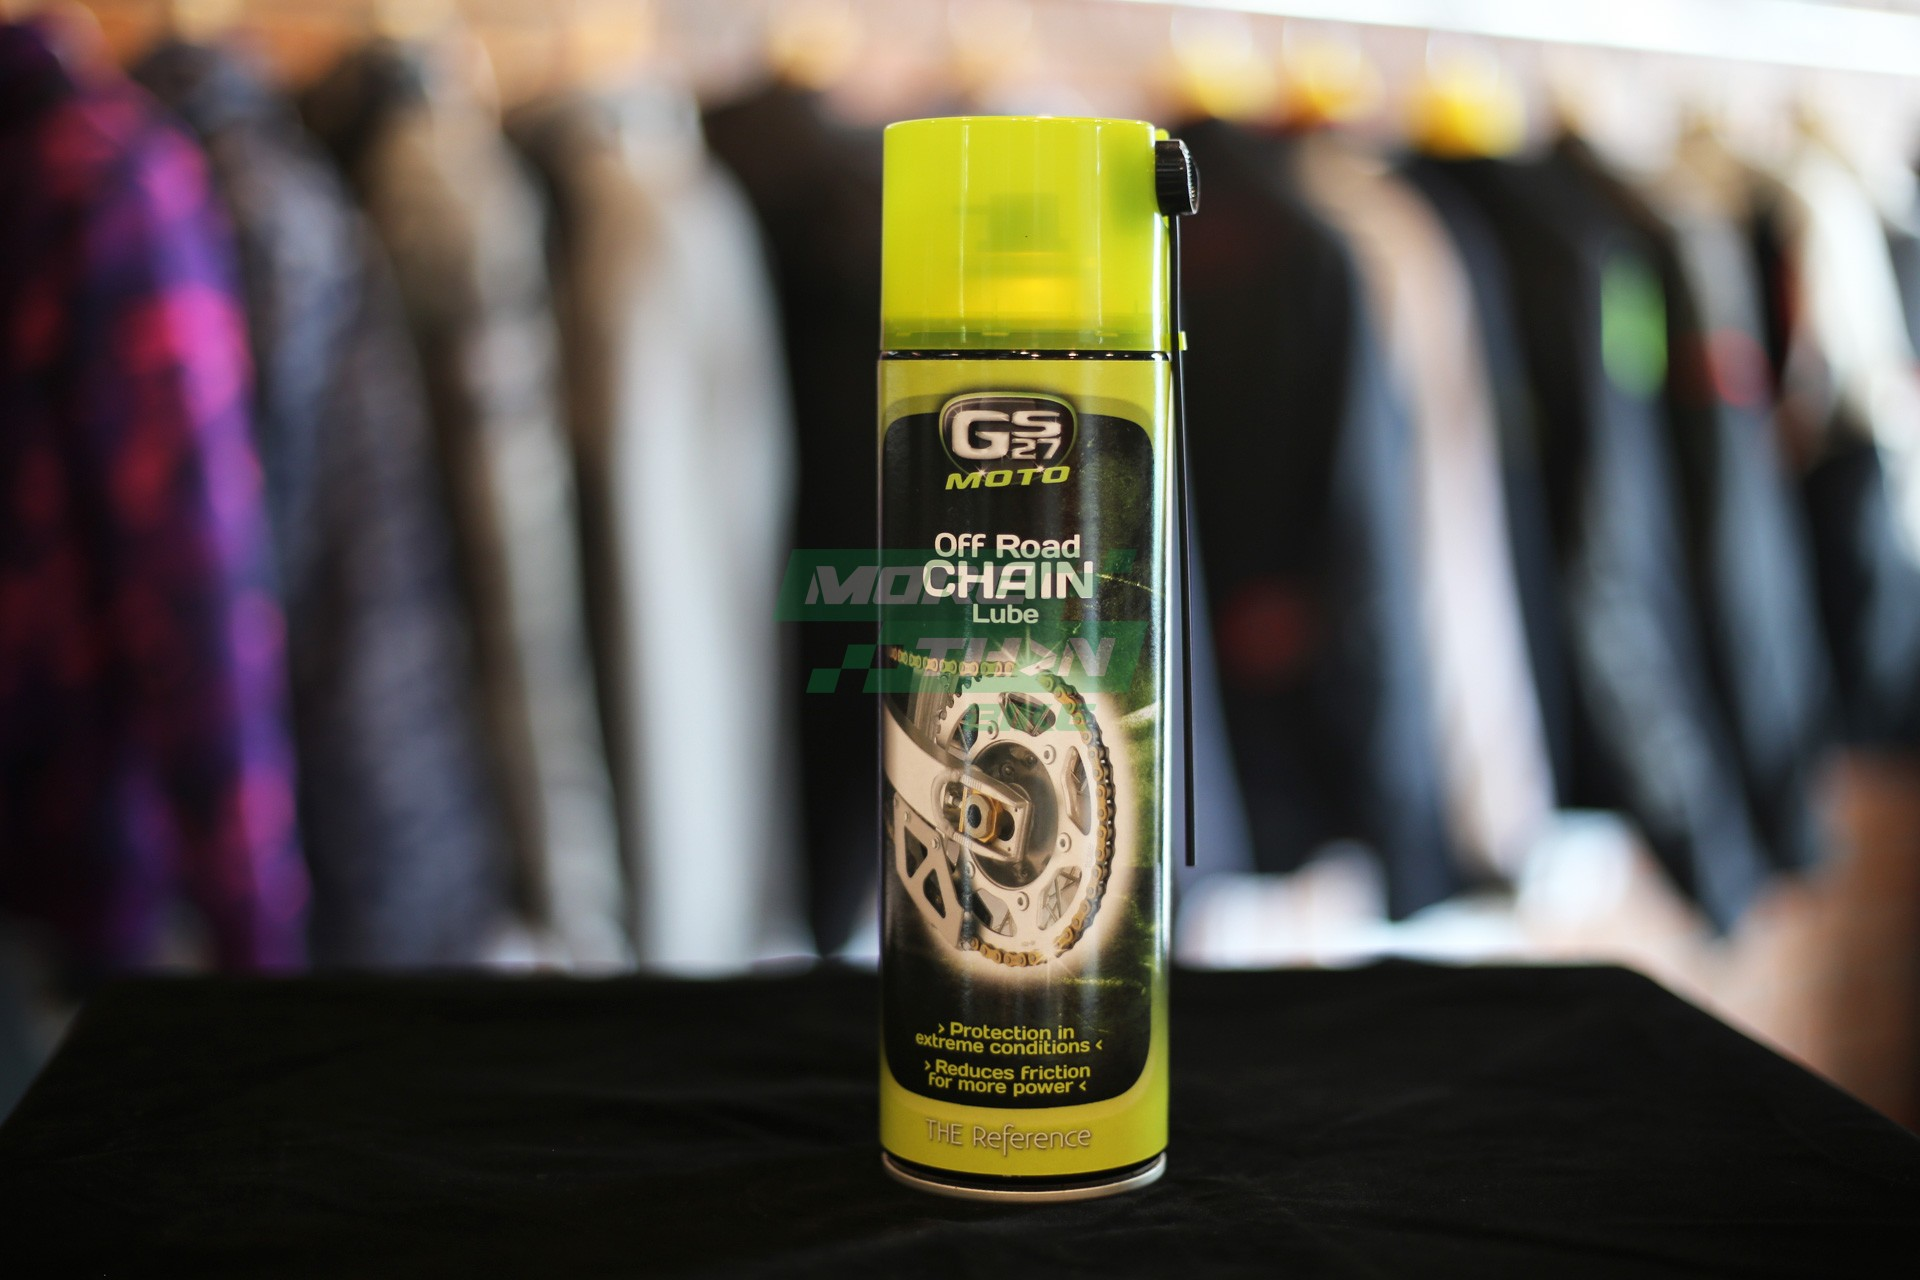 gs27-chain-lube-off-road-500-ml